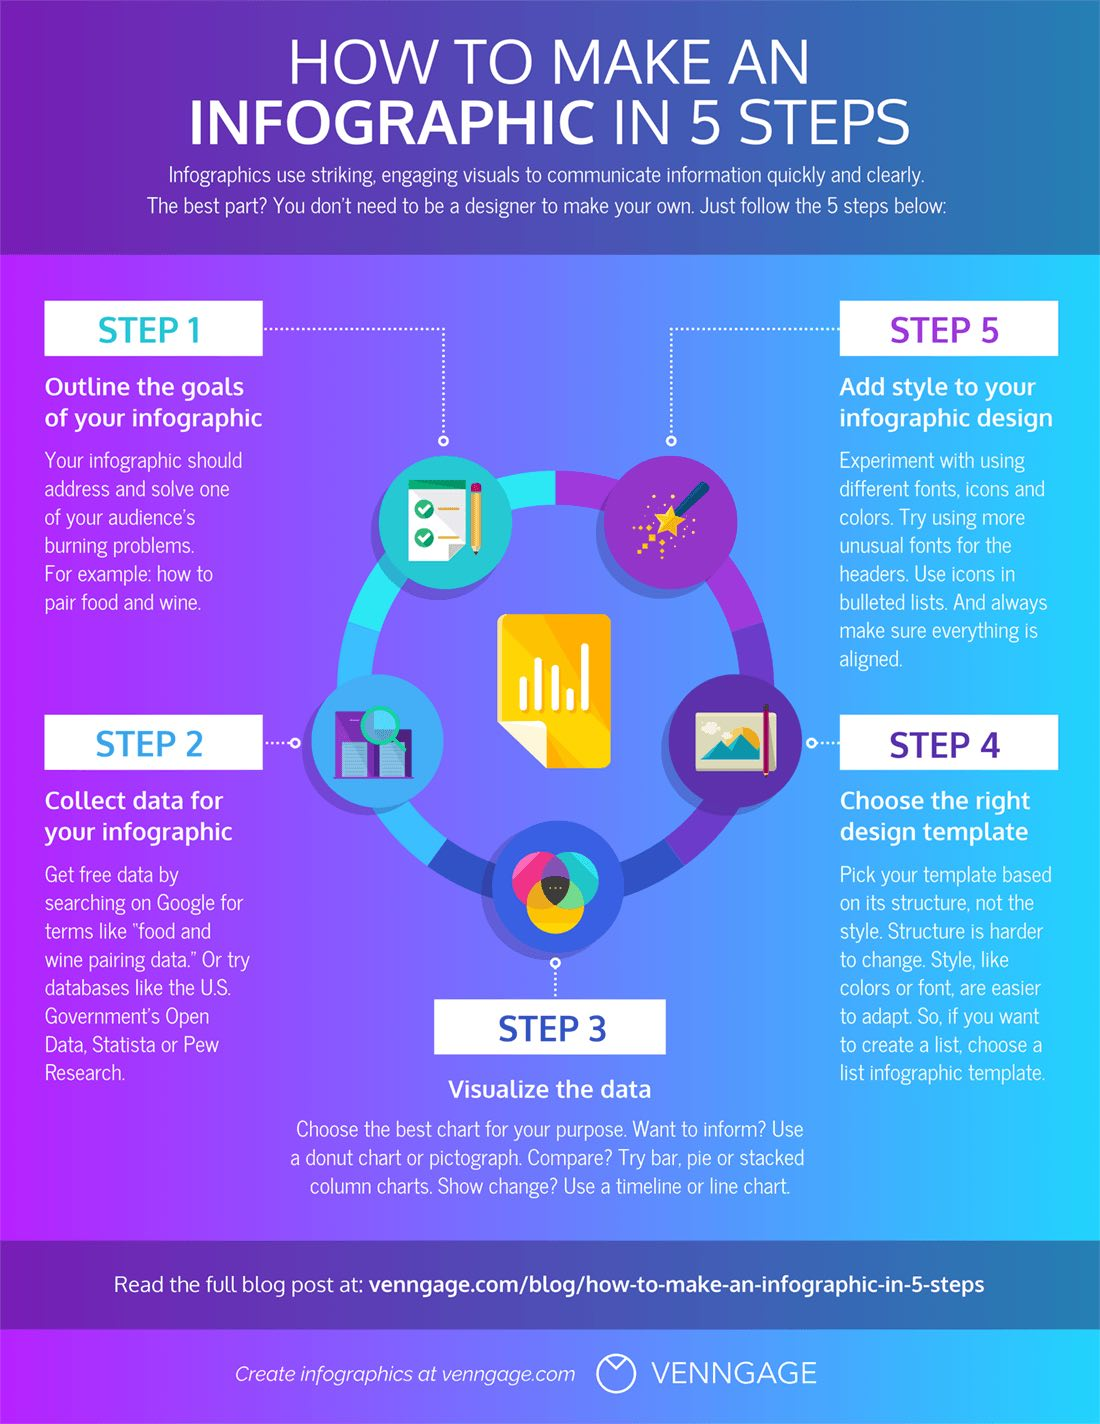 How to Make an Infographic in 5 Steps [Step-By-Step Guide] - Venngage